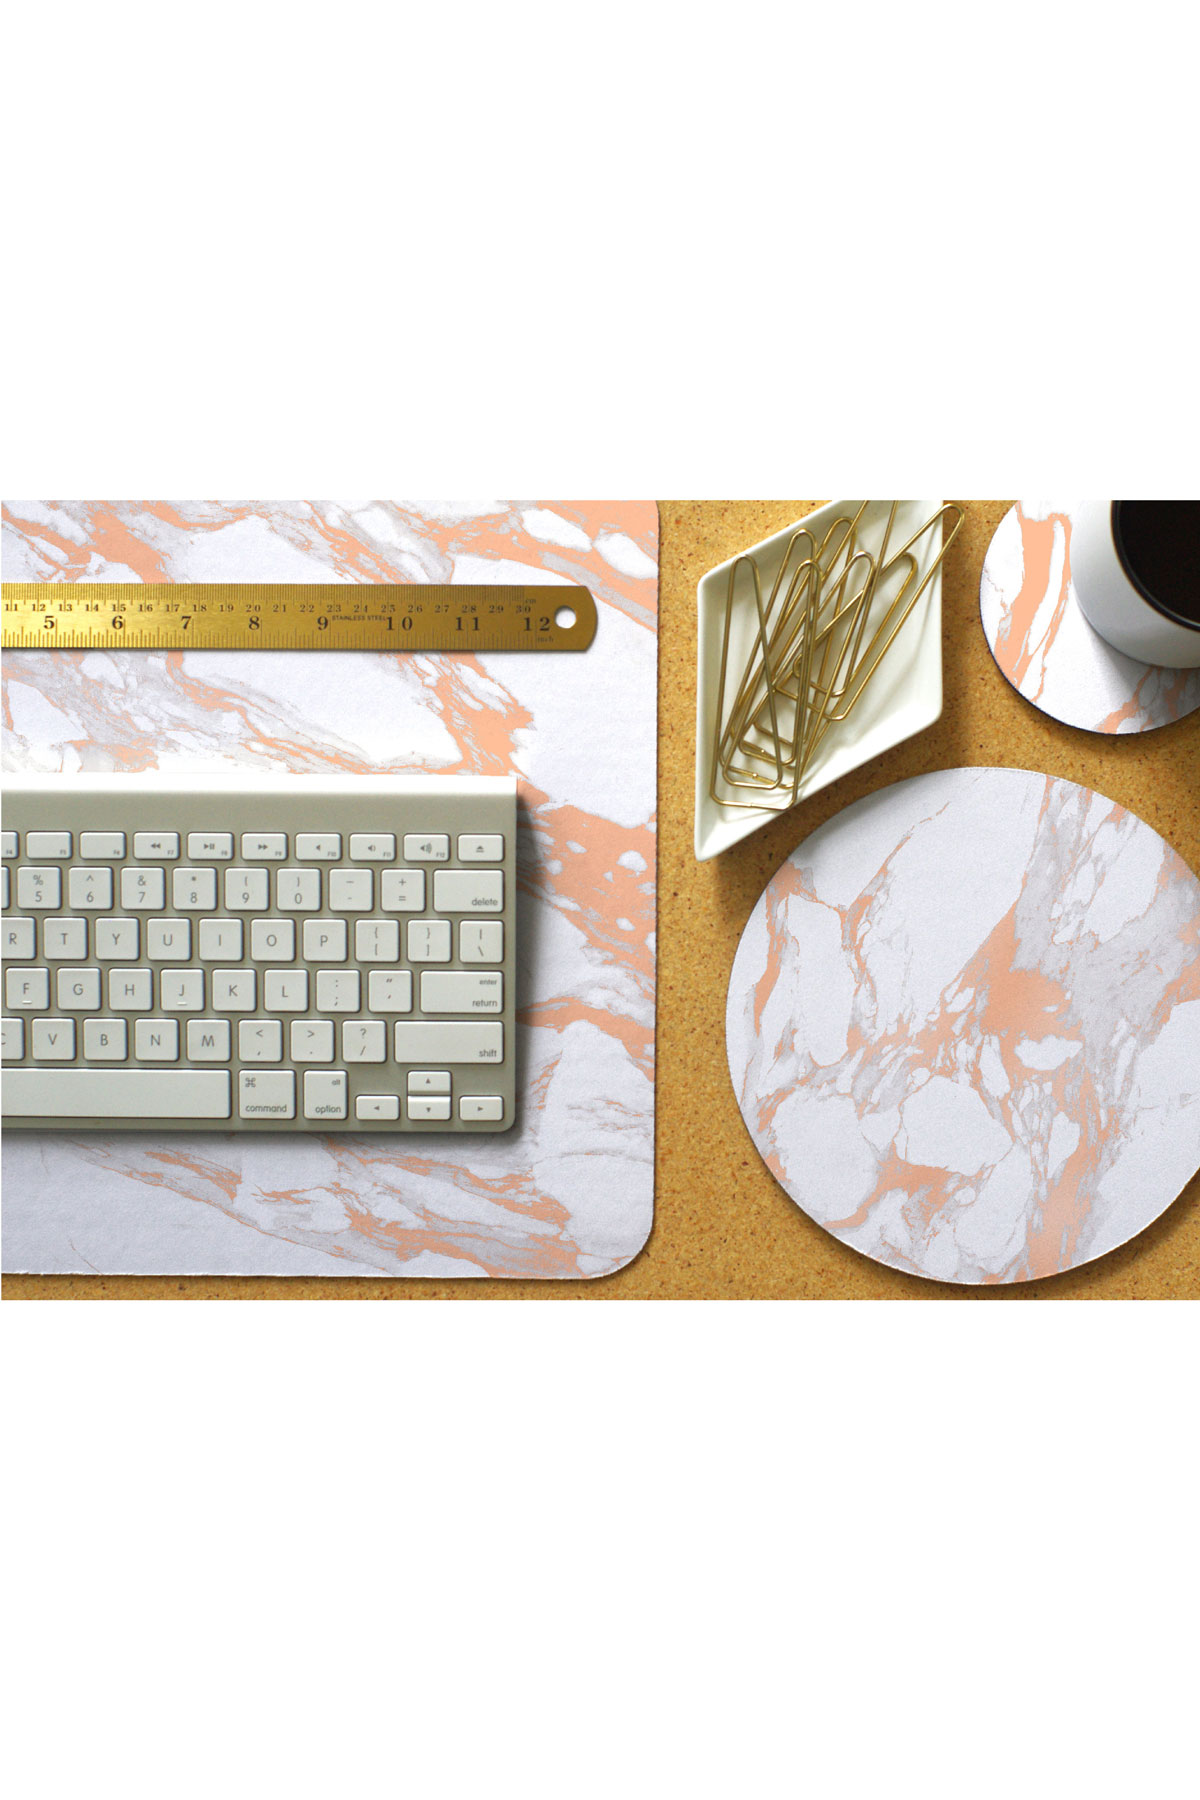 Rose Gold and White Marble Desk Mat, Mouse Pad, and Coaster Set